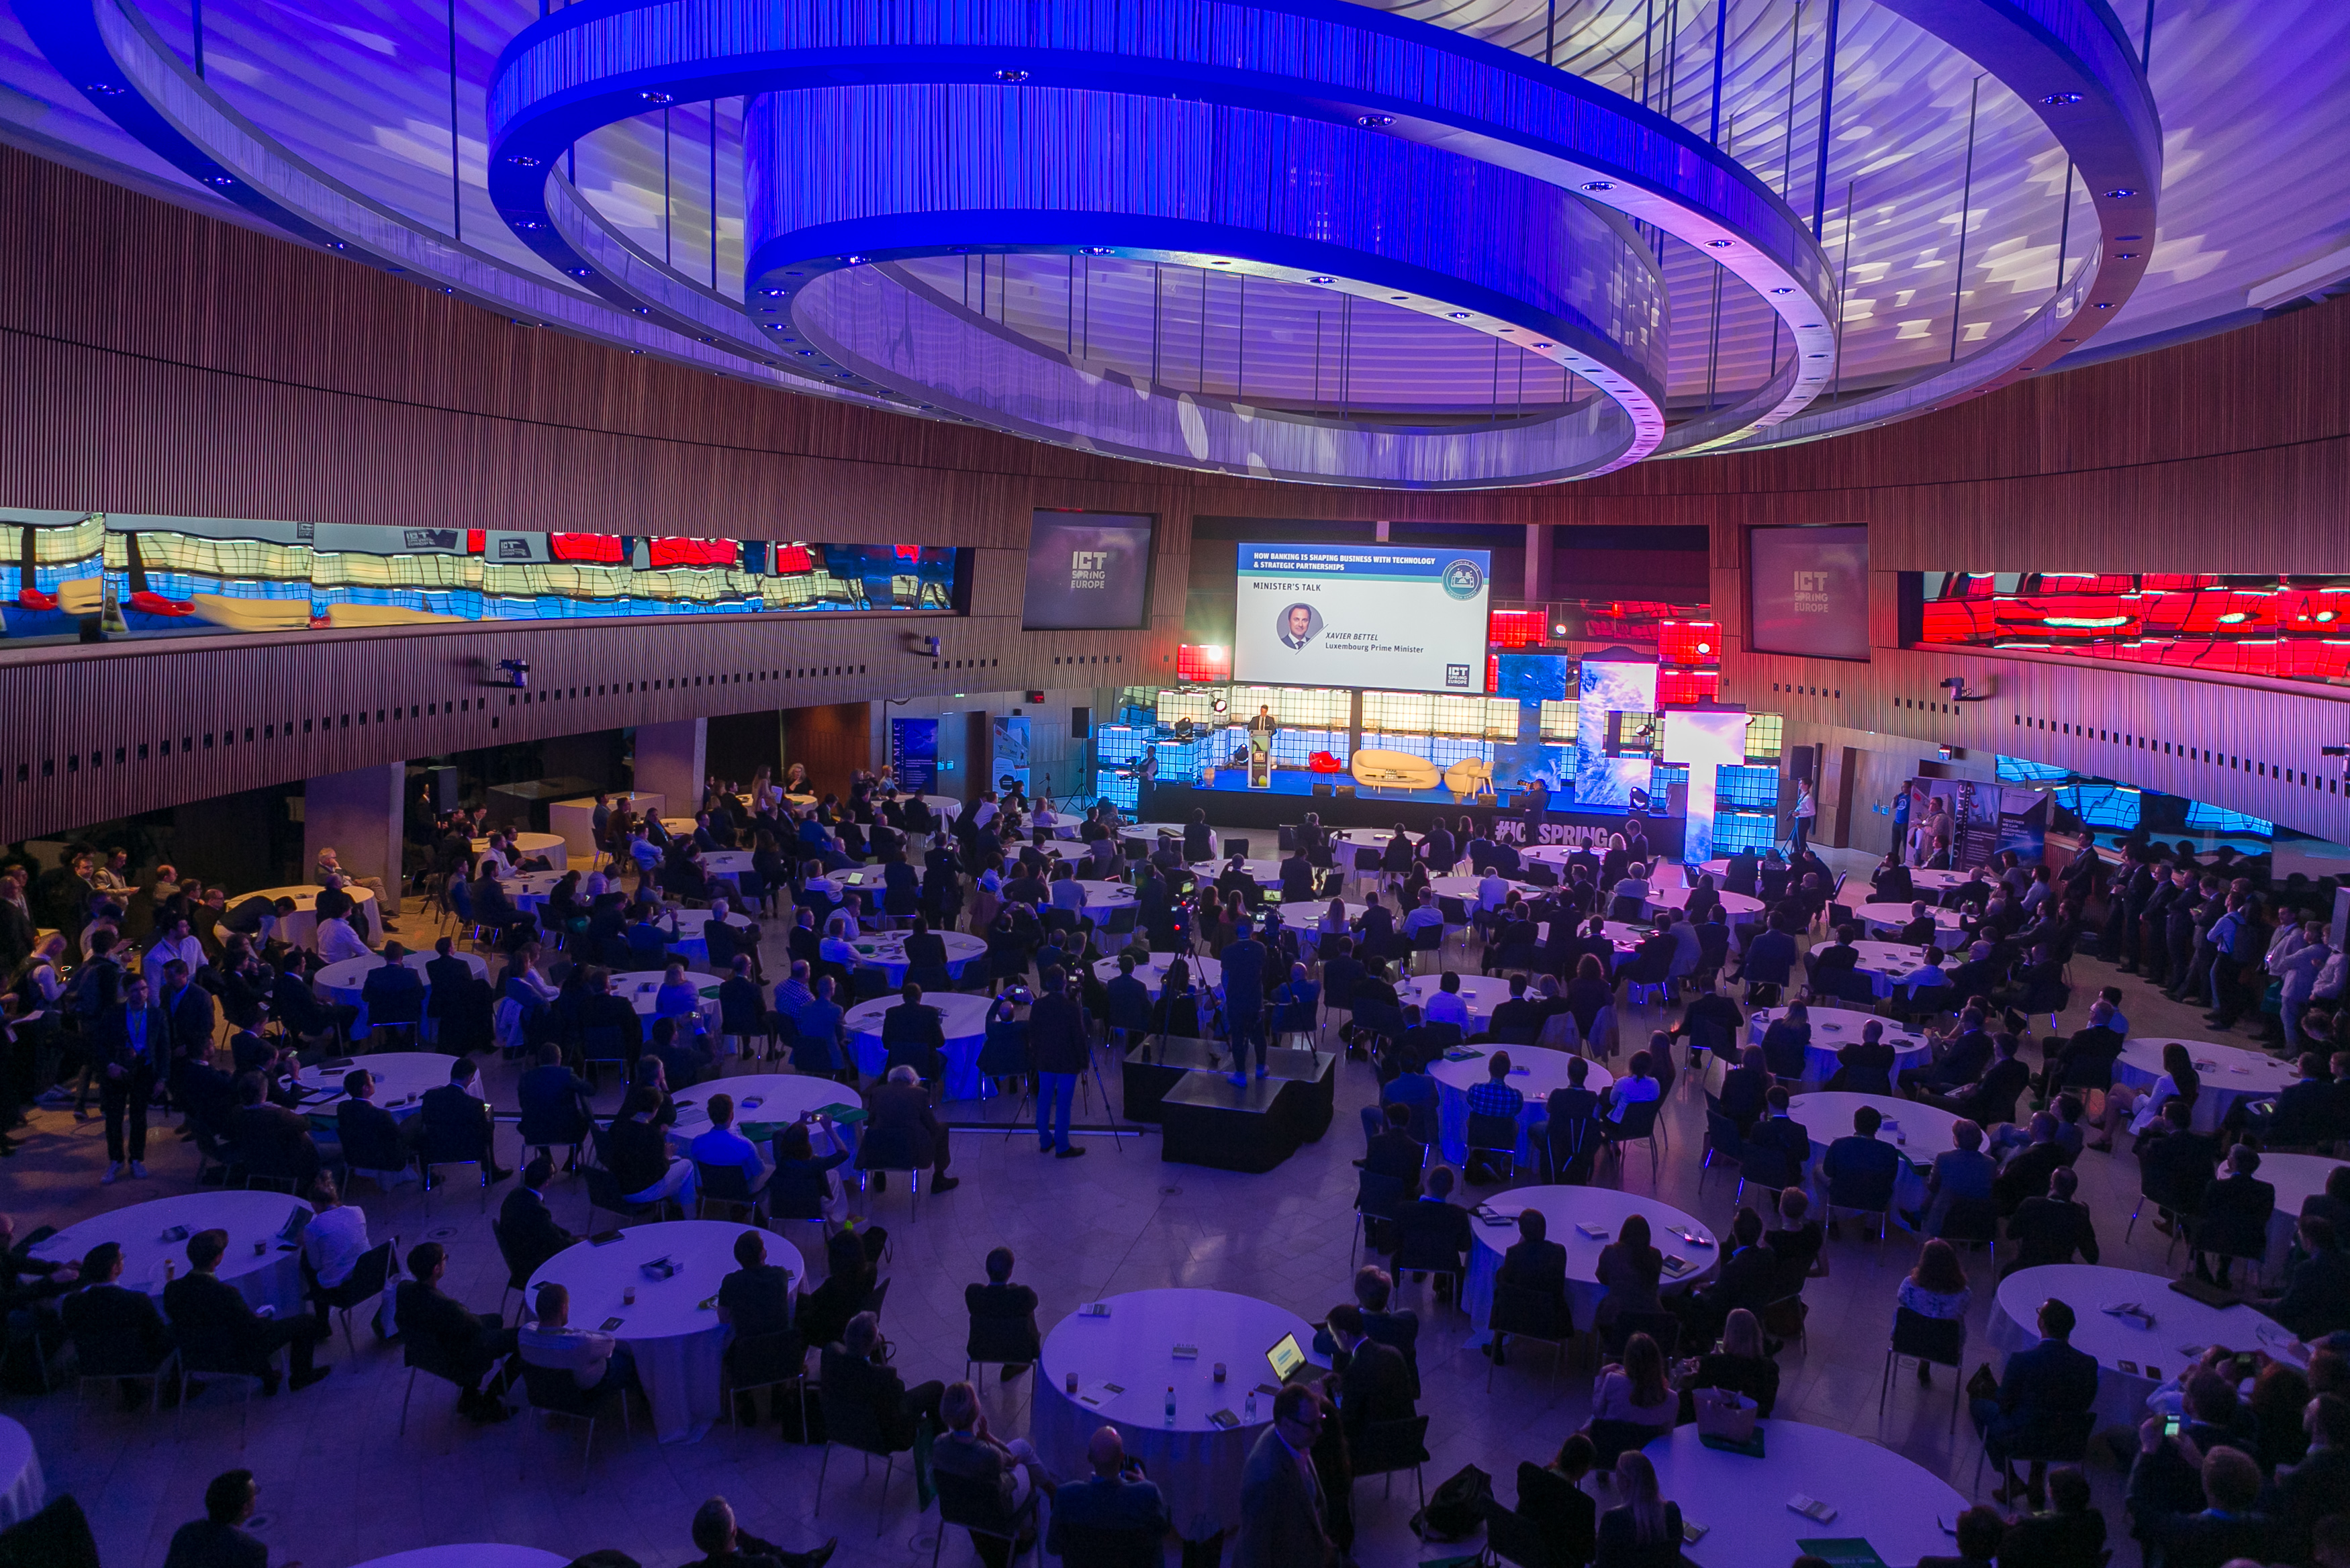 ICT SPRING 2018